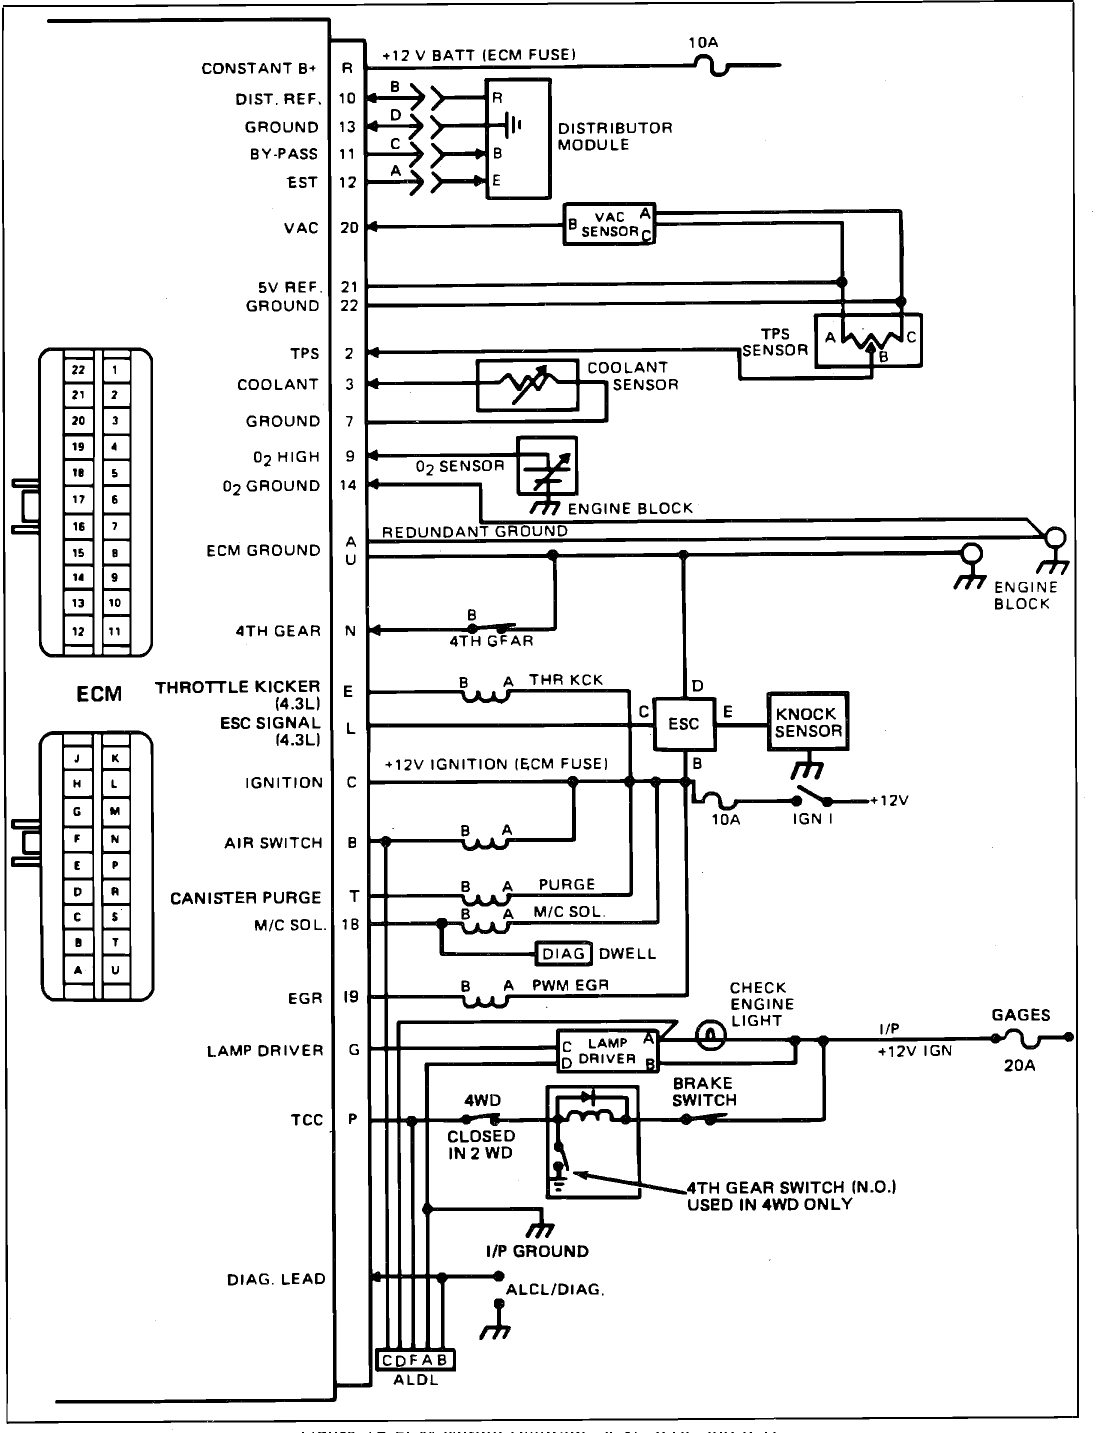 hight resolution of wiring diagram 1991 chevrolet van wiring diagram blogs chevy tail light wiring diagram chevrolet g20 wiring diagram